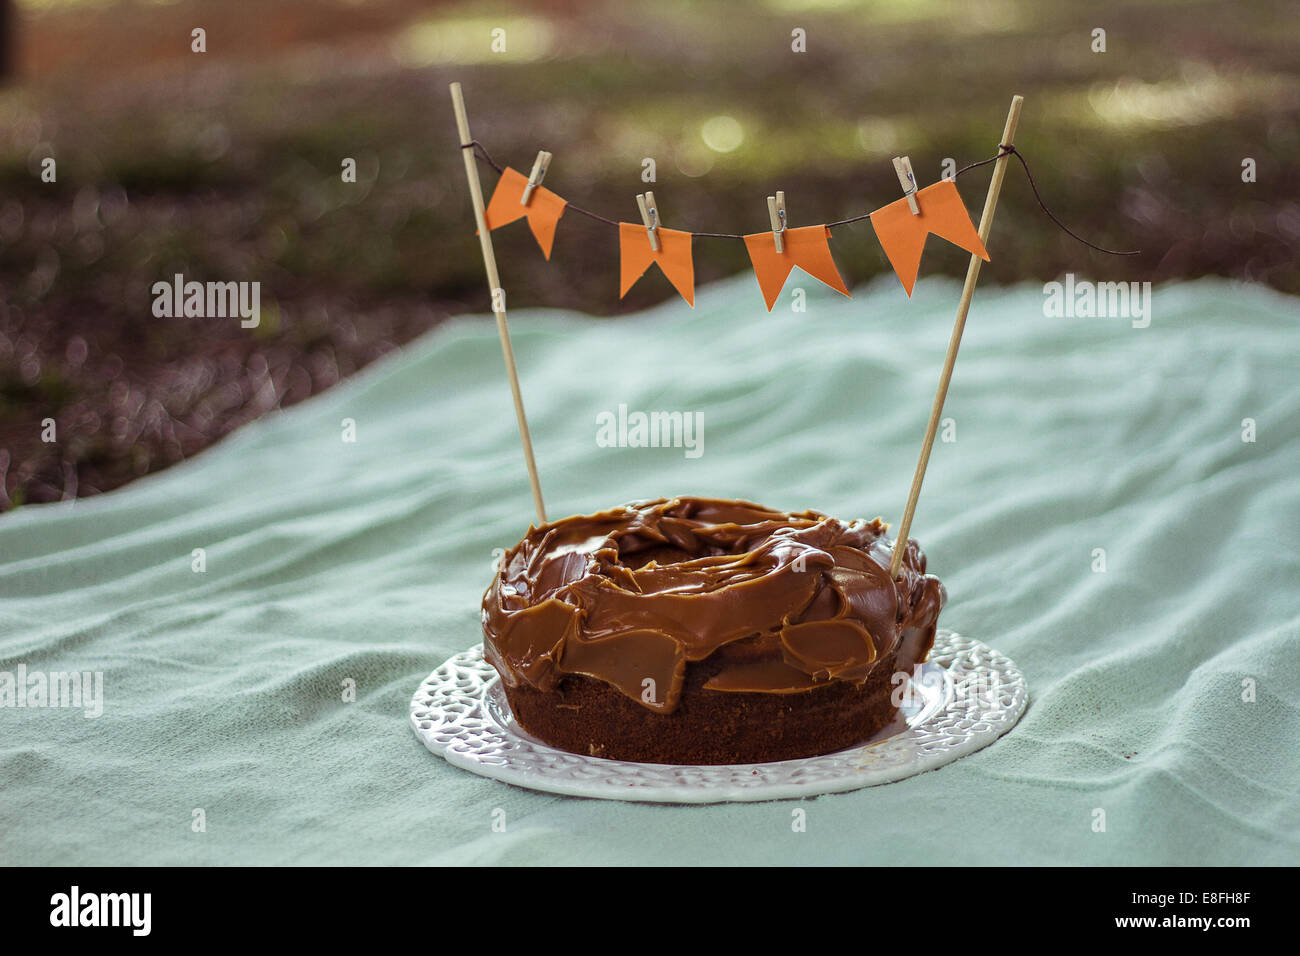 Birthday Cake decorated with flags - Stock Image